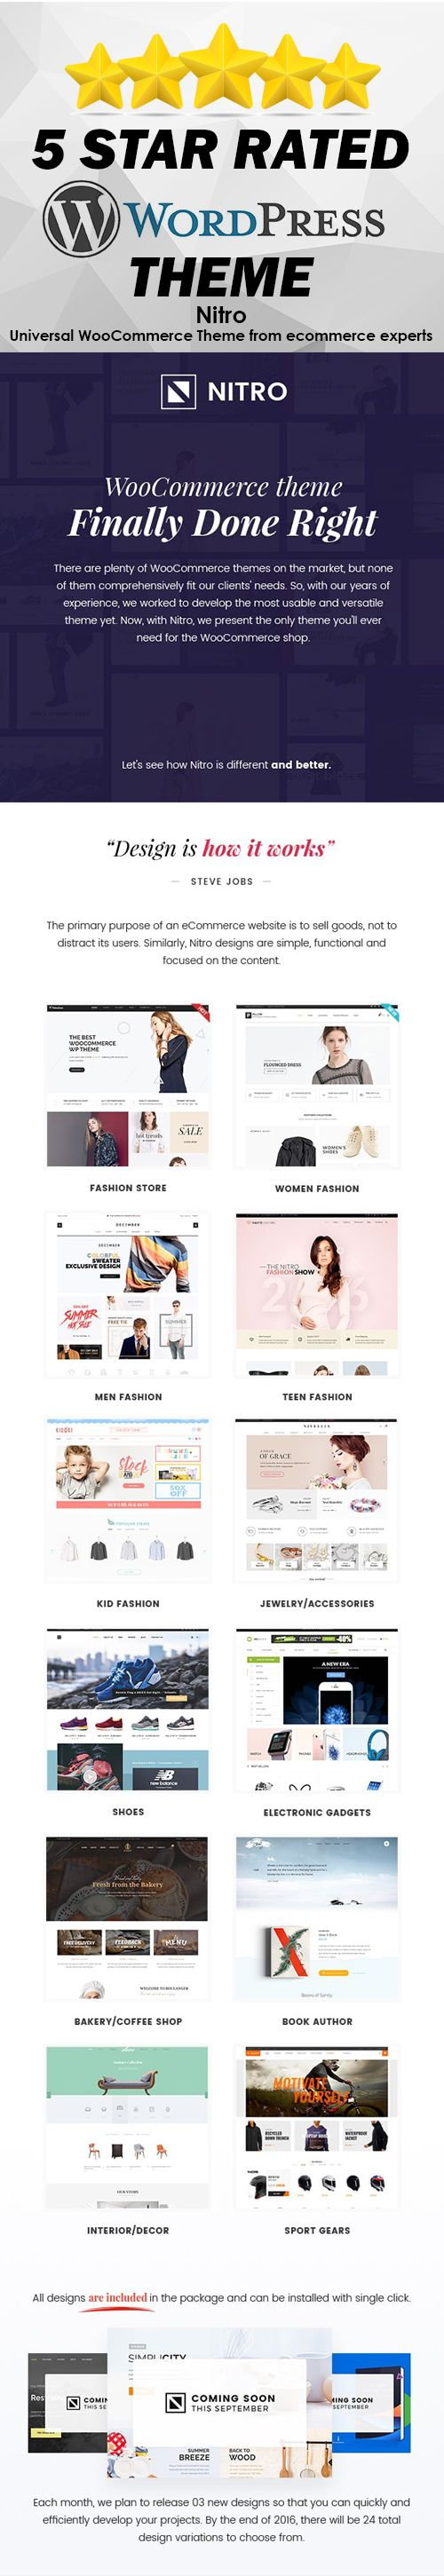 Woocommerce Wordpress Theme finally done right! There are plenty Woocommerce themes on the market, but none of them comprehensively fit our client's needs. This is the only Wordpress theme you'll ever need for your online shop.